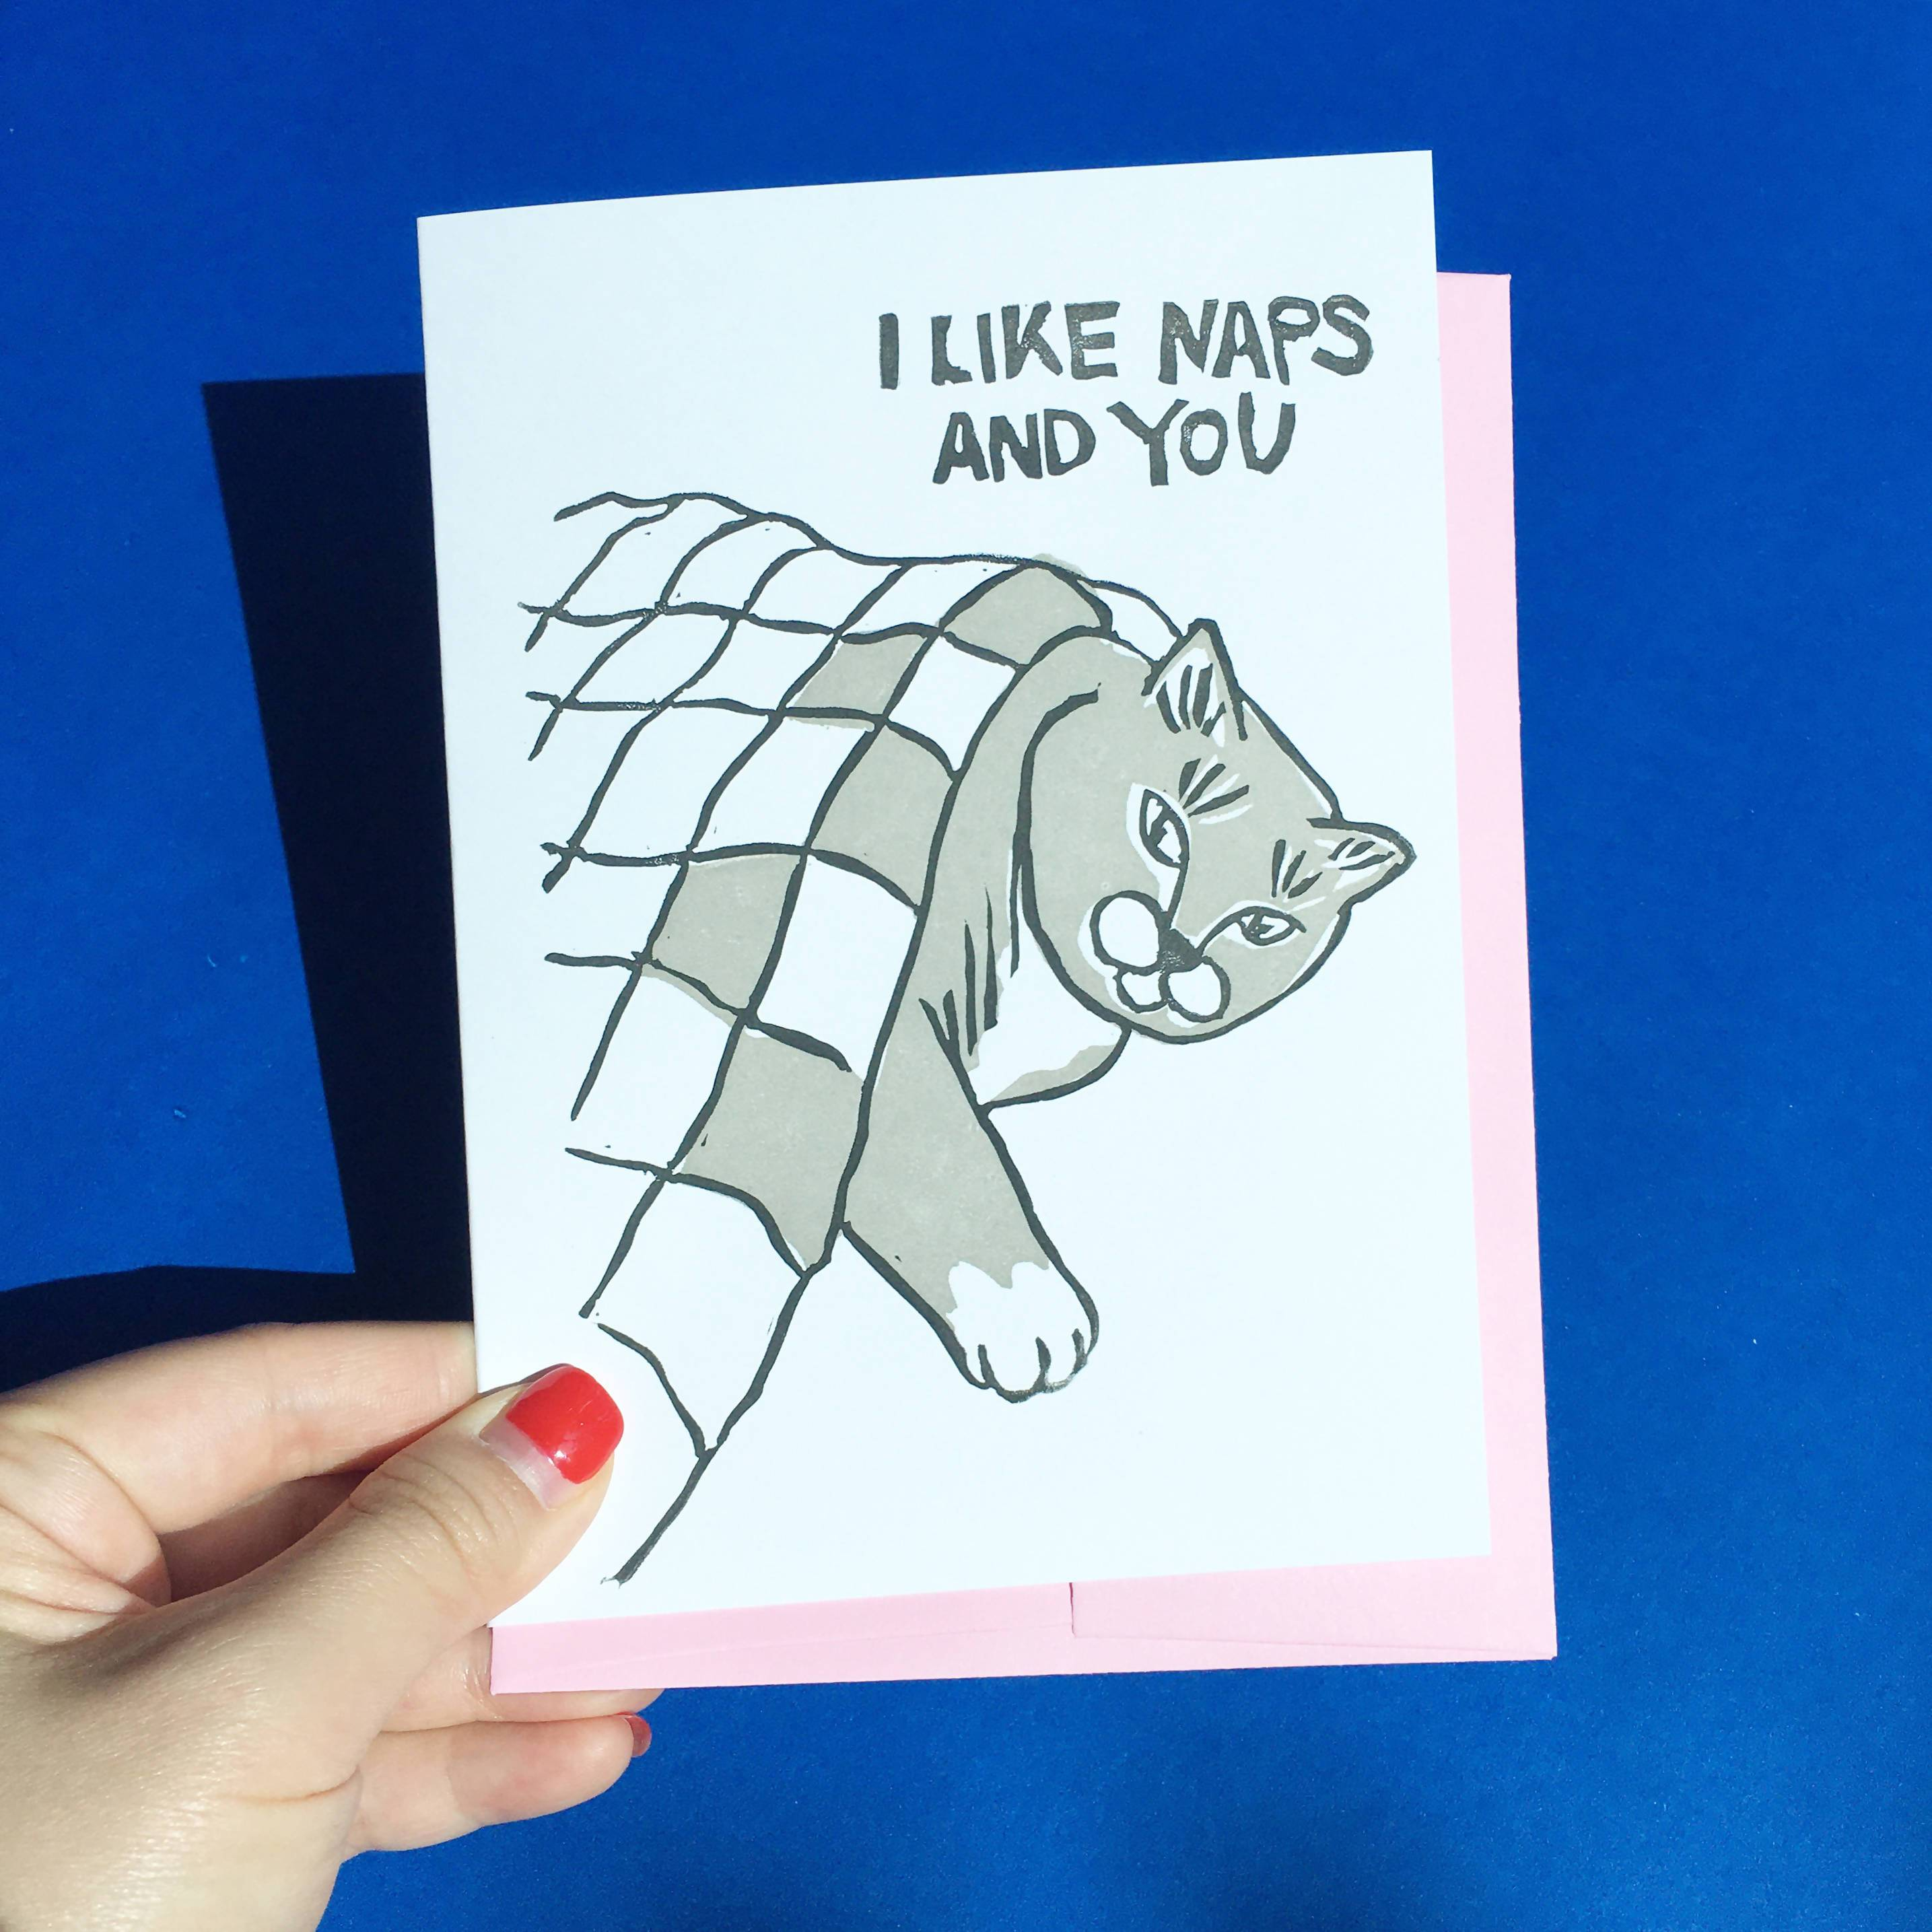 I Like Naps and You - Hand-Printed Cat Greeting Card - Love Cards - Ping Hatta. Studio - Naiise